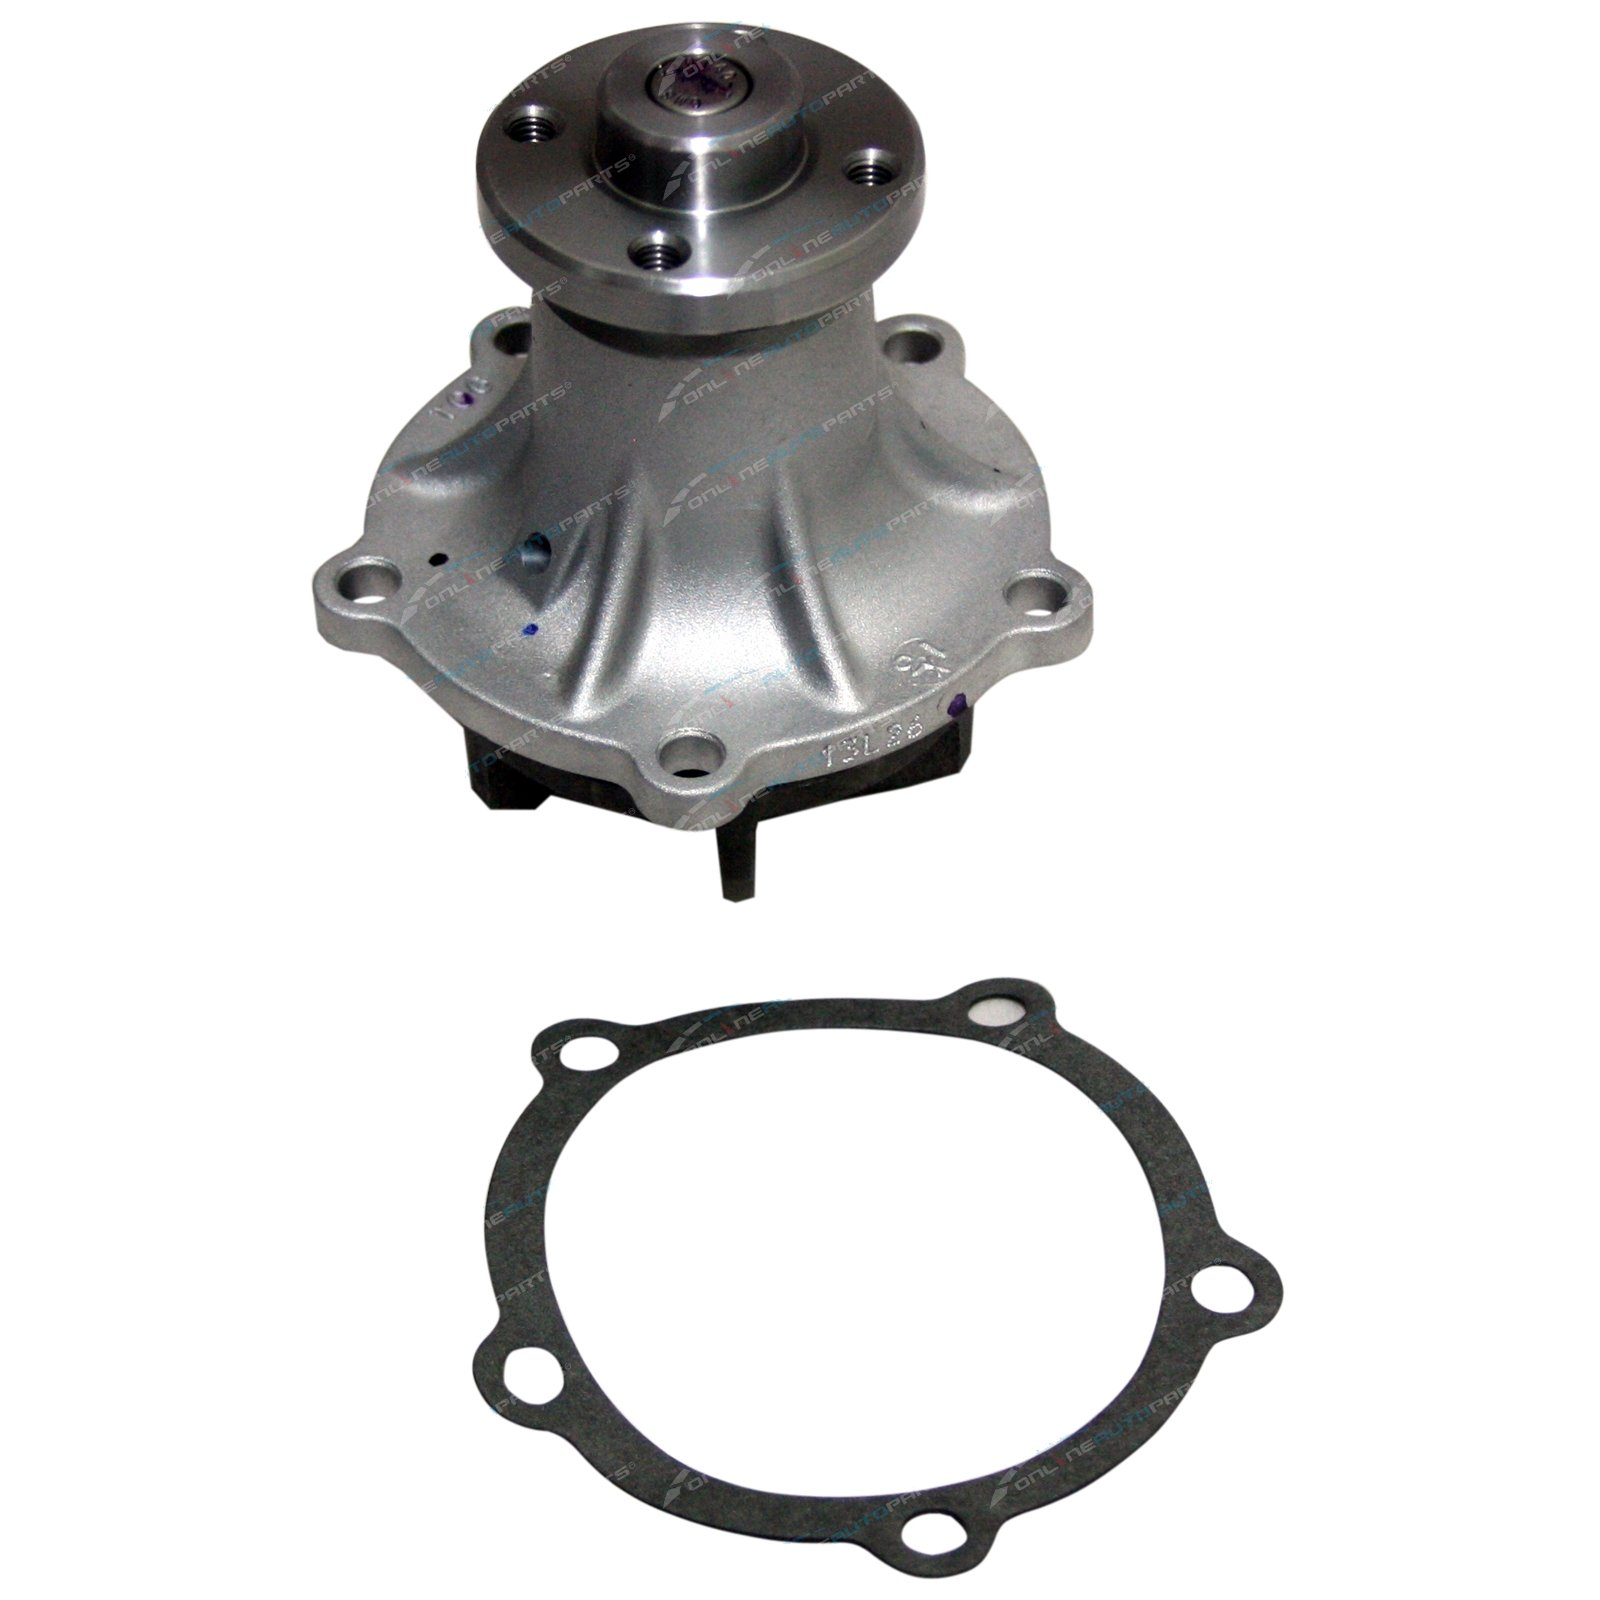 Water Pump suits Toyota Petrol 3R 4R 5R RT40 Corona RS40 RS50 Crown + Forklifts